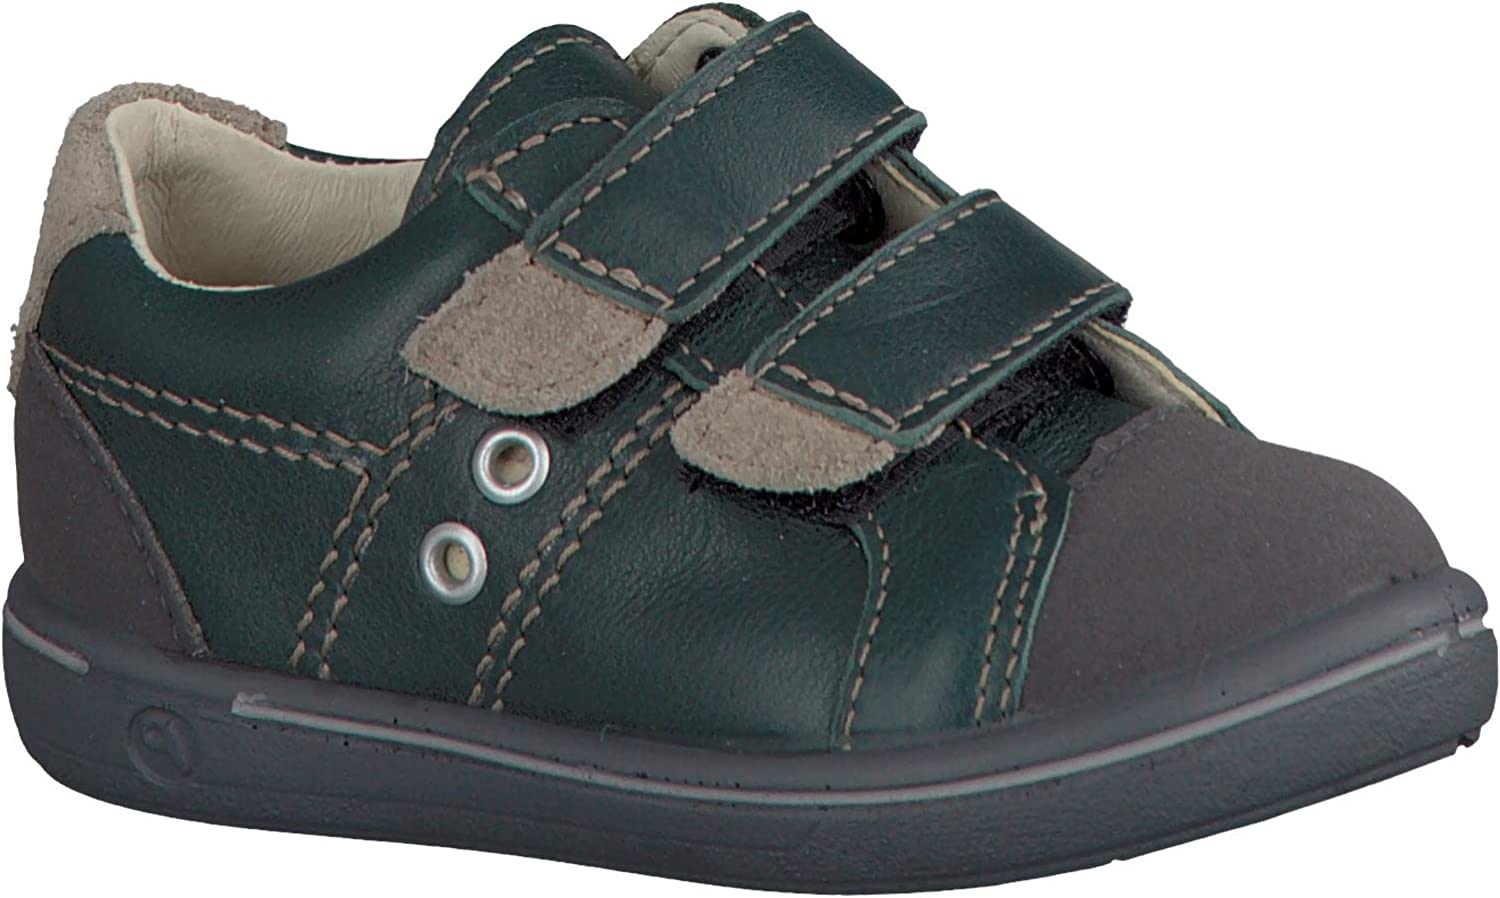 Ricosta Kid's Nippy Leather Shoes, Forest Green